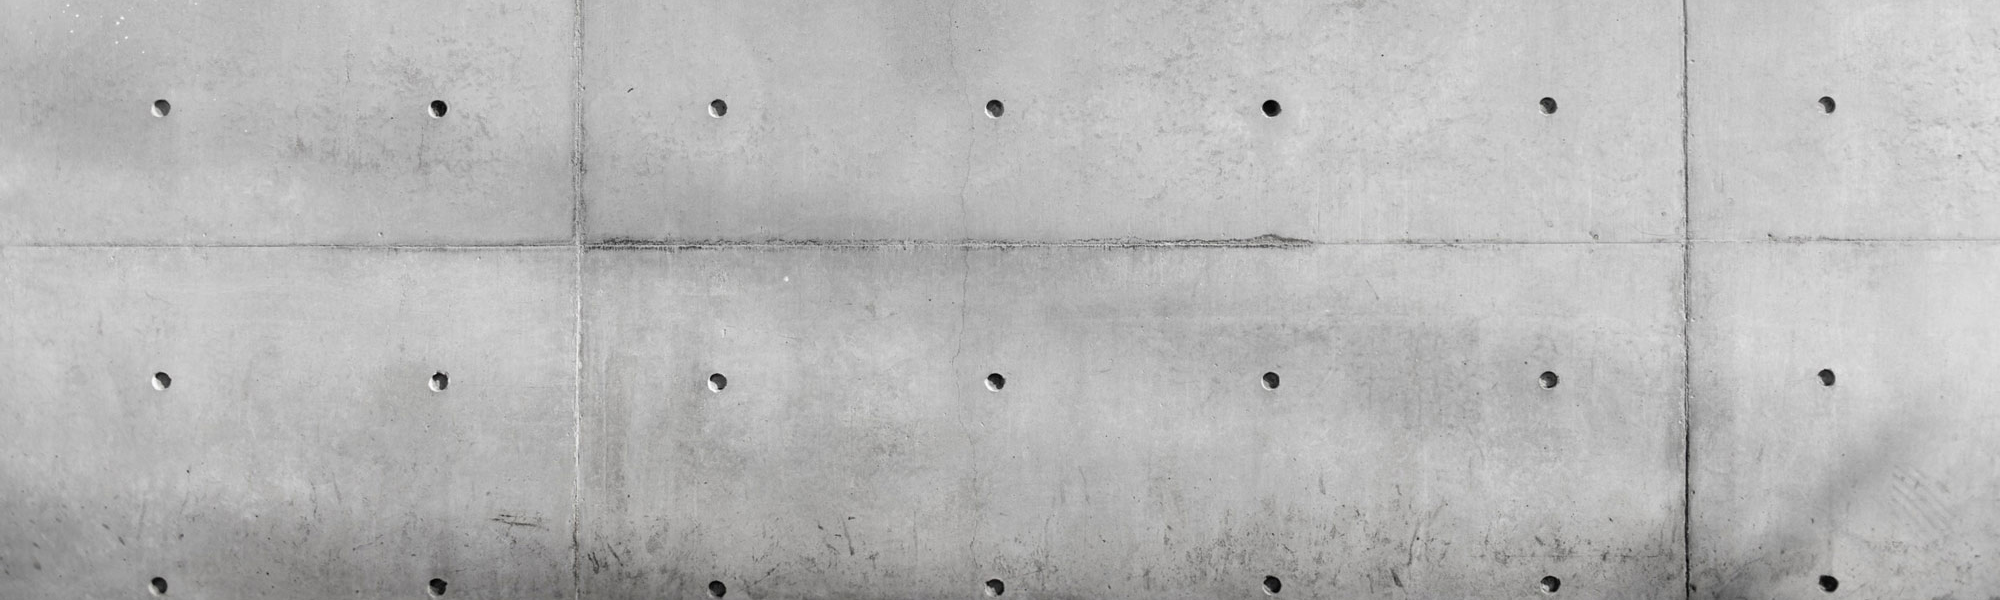 Concrete wall Photo by rawpixel on Unsplash